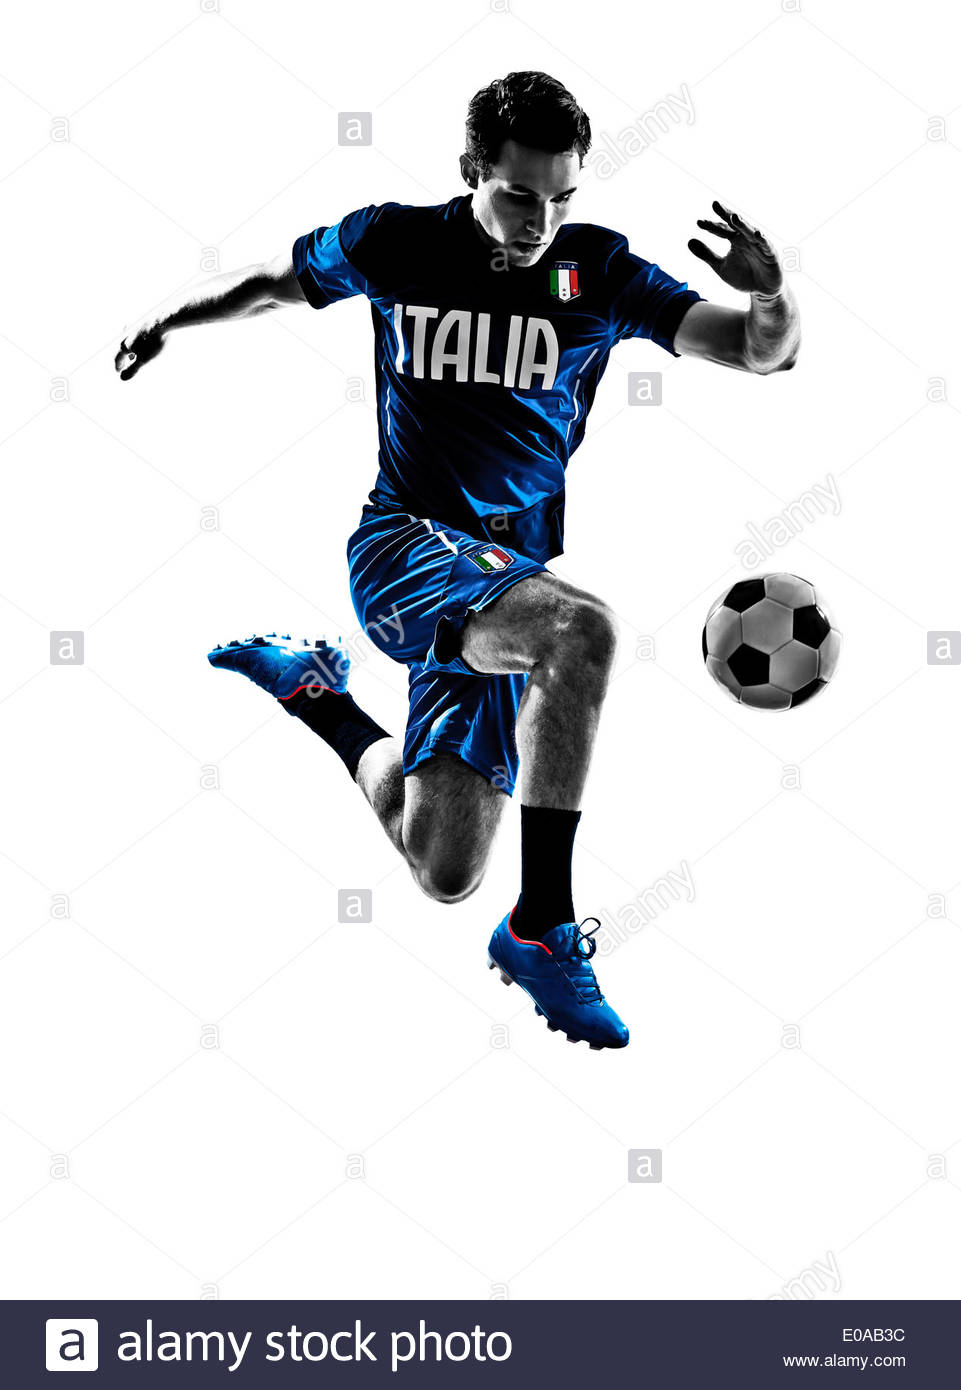 961x1390 One Italian Soccer Player Man Playing Football Jumping